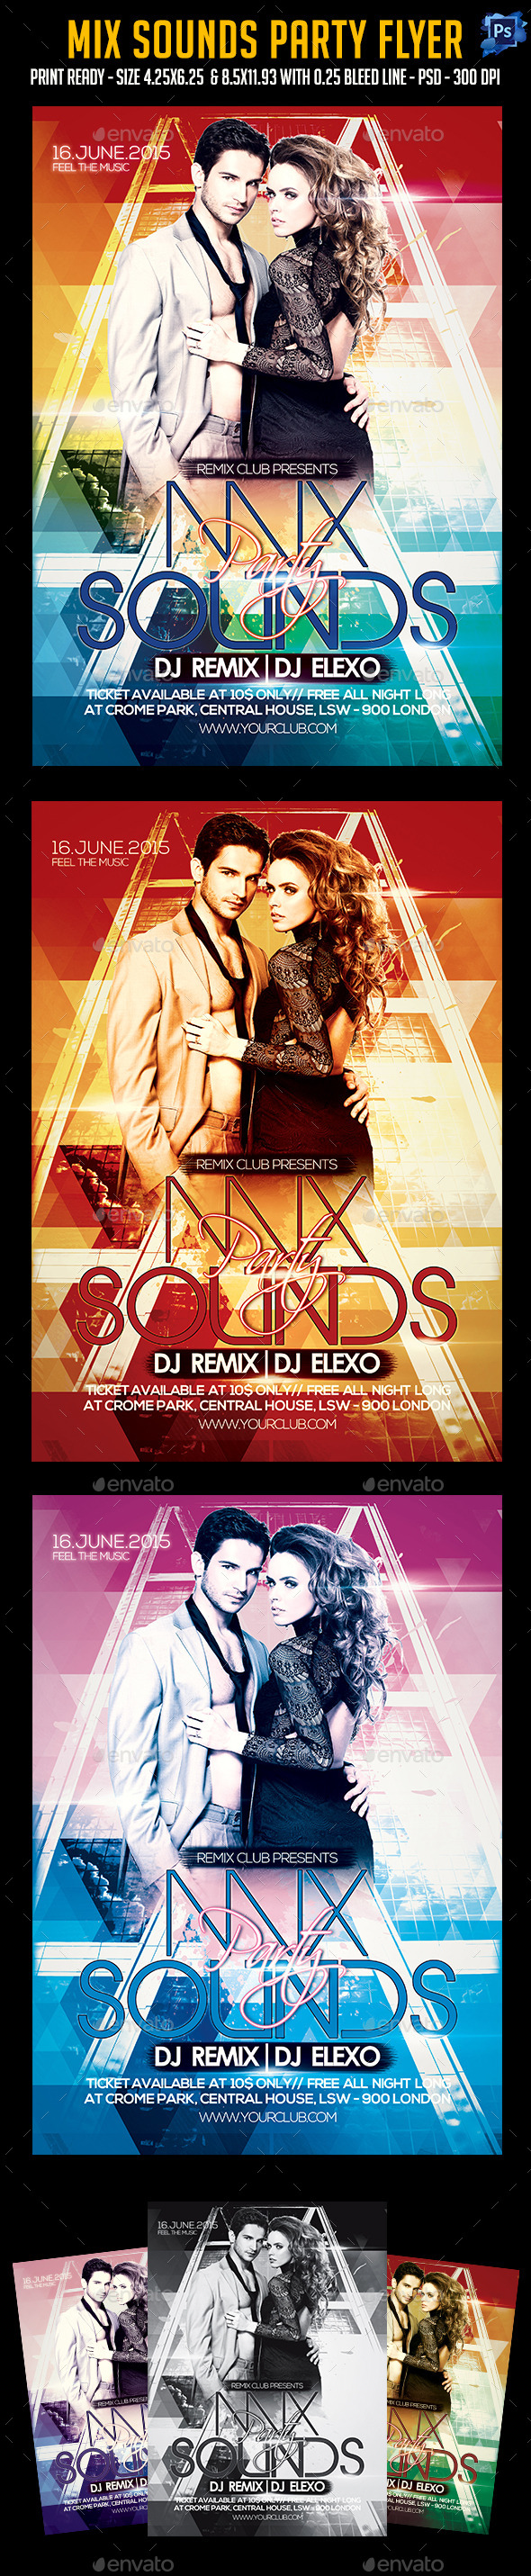 Mix Sounds Party Flyer - Clubs & Parties Events